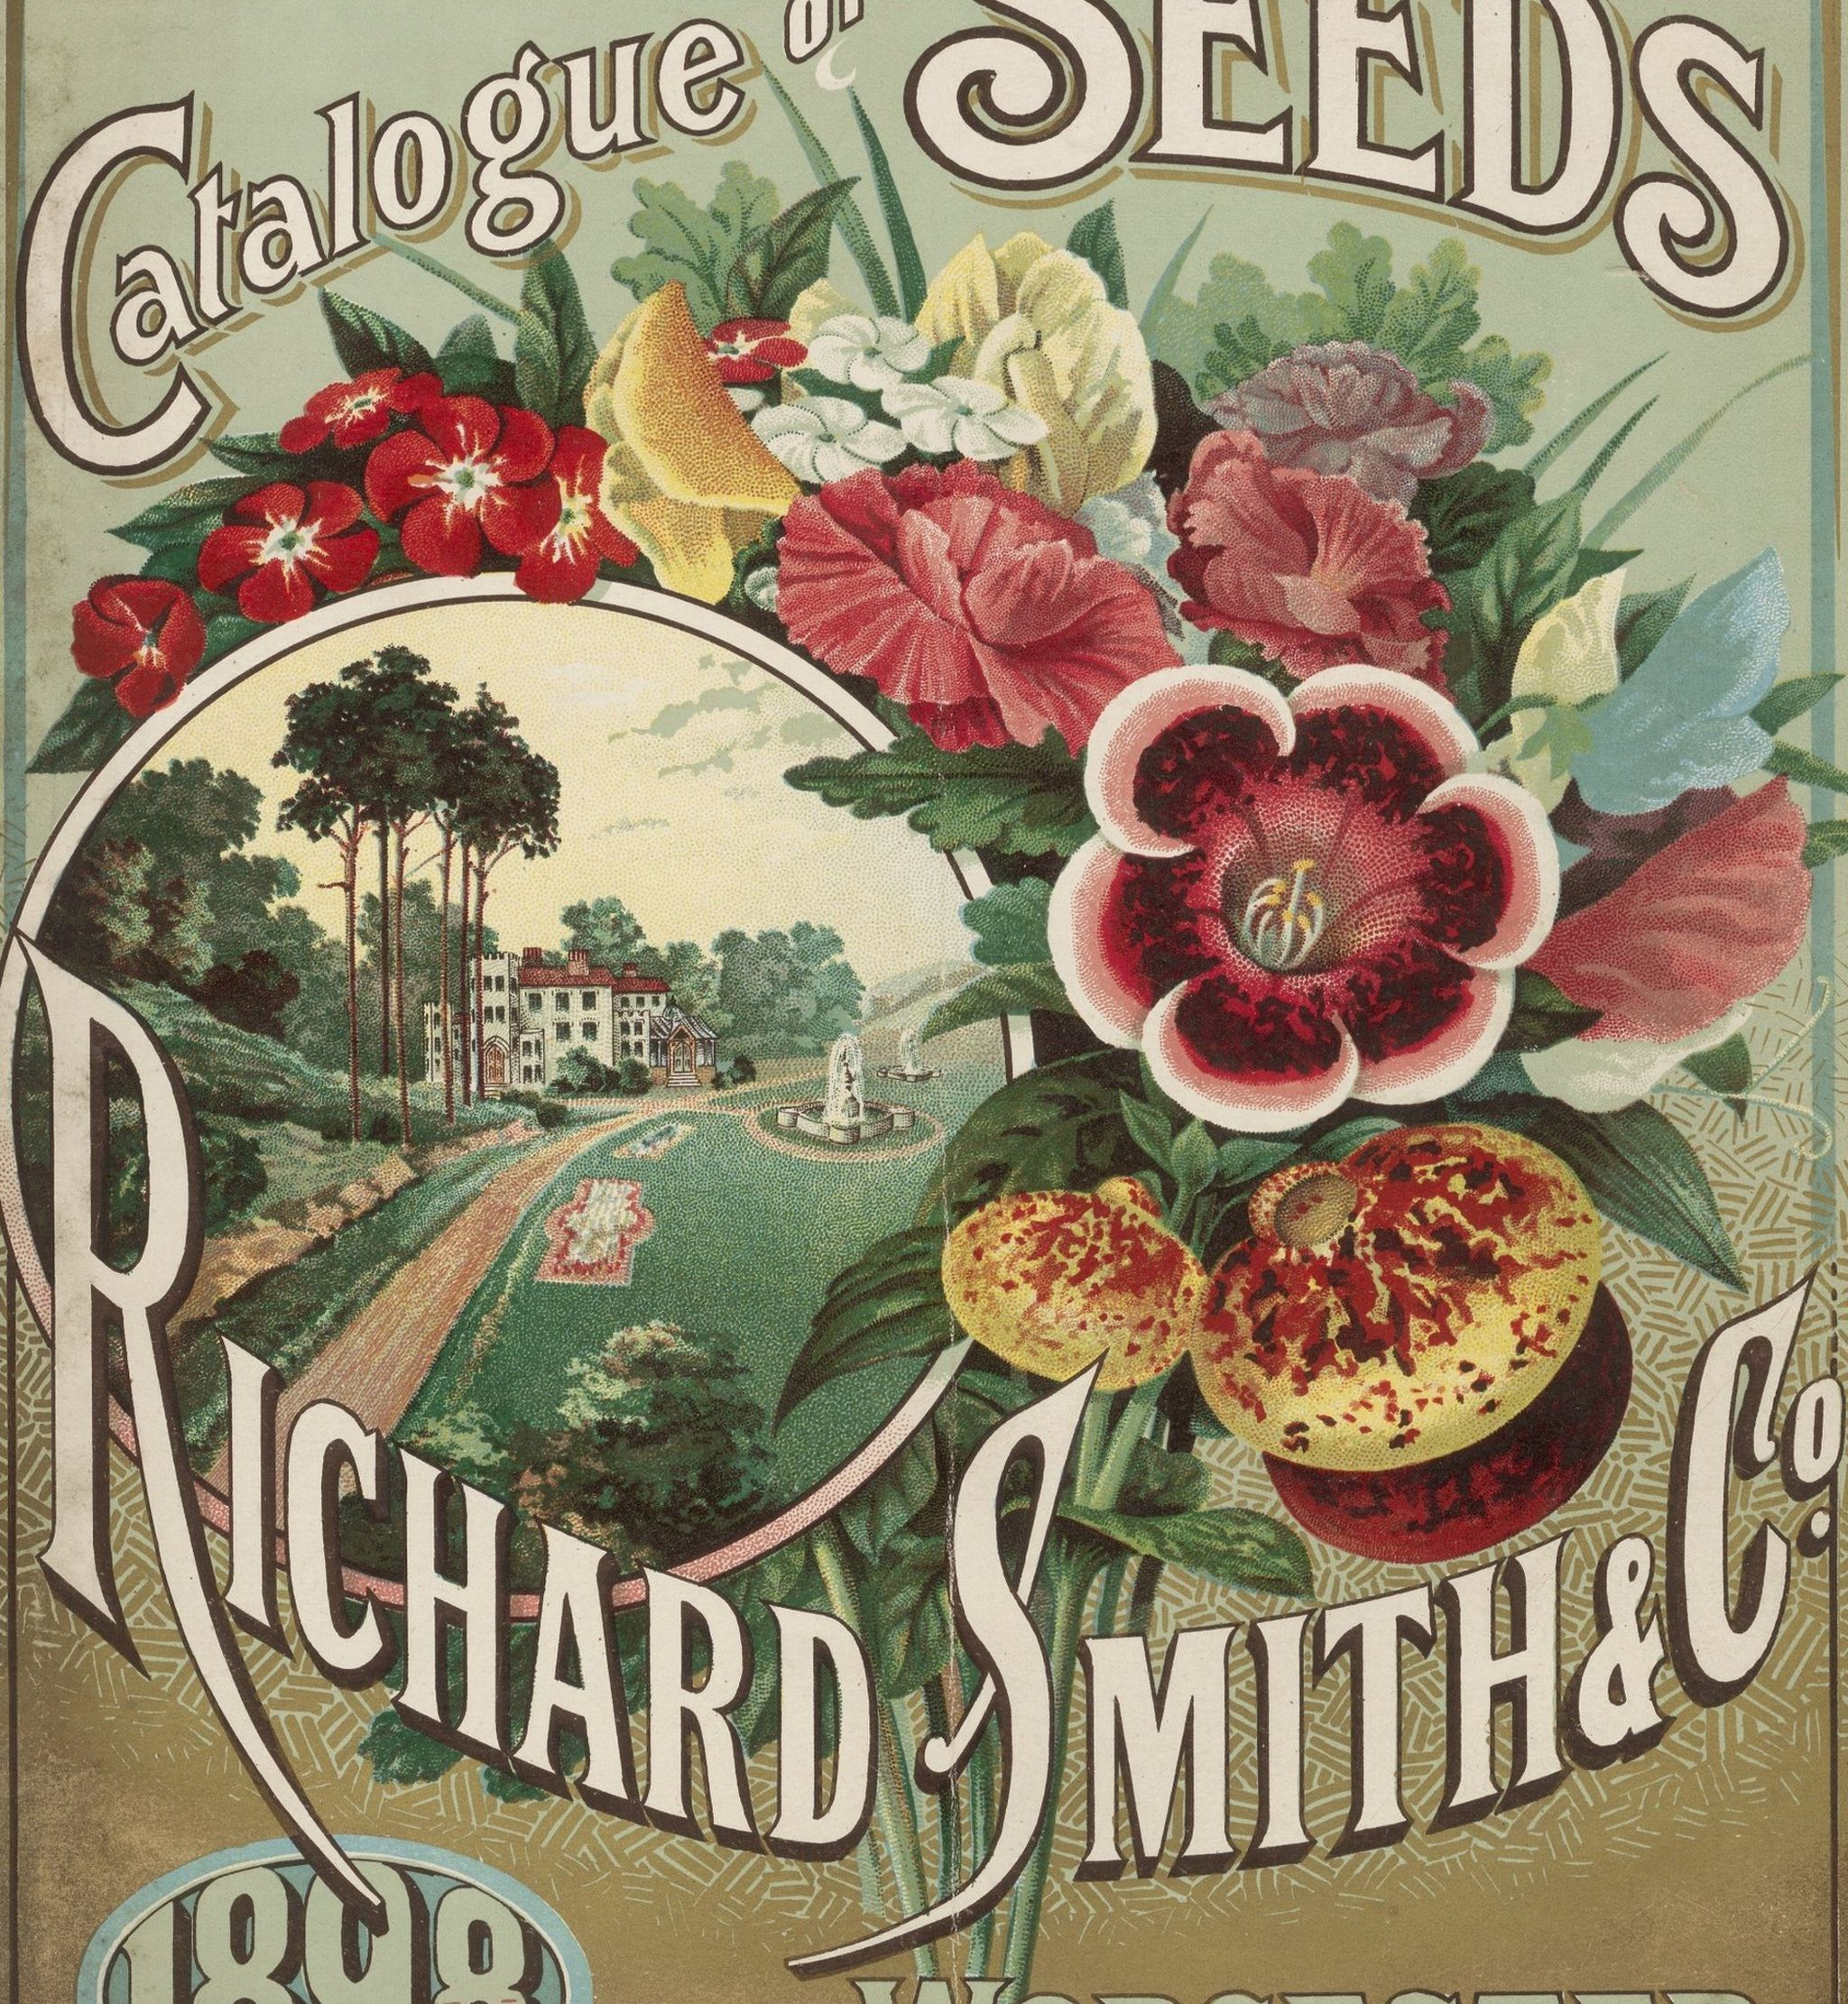 A catalogue of seeds from 1898